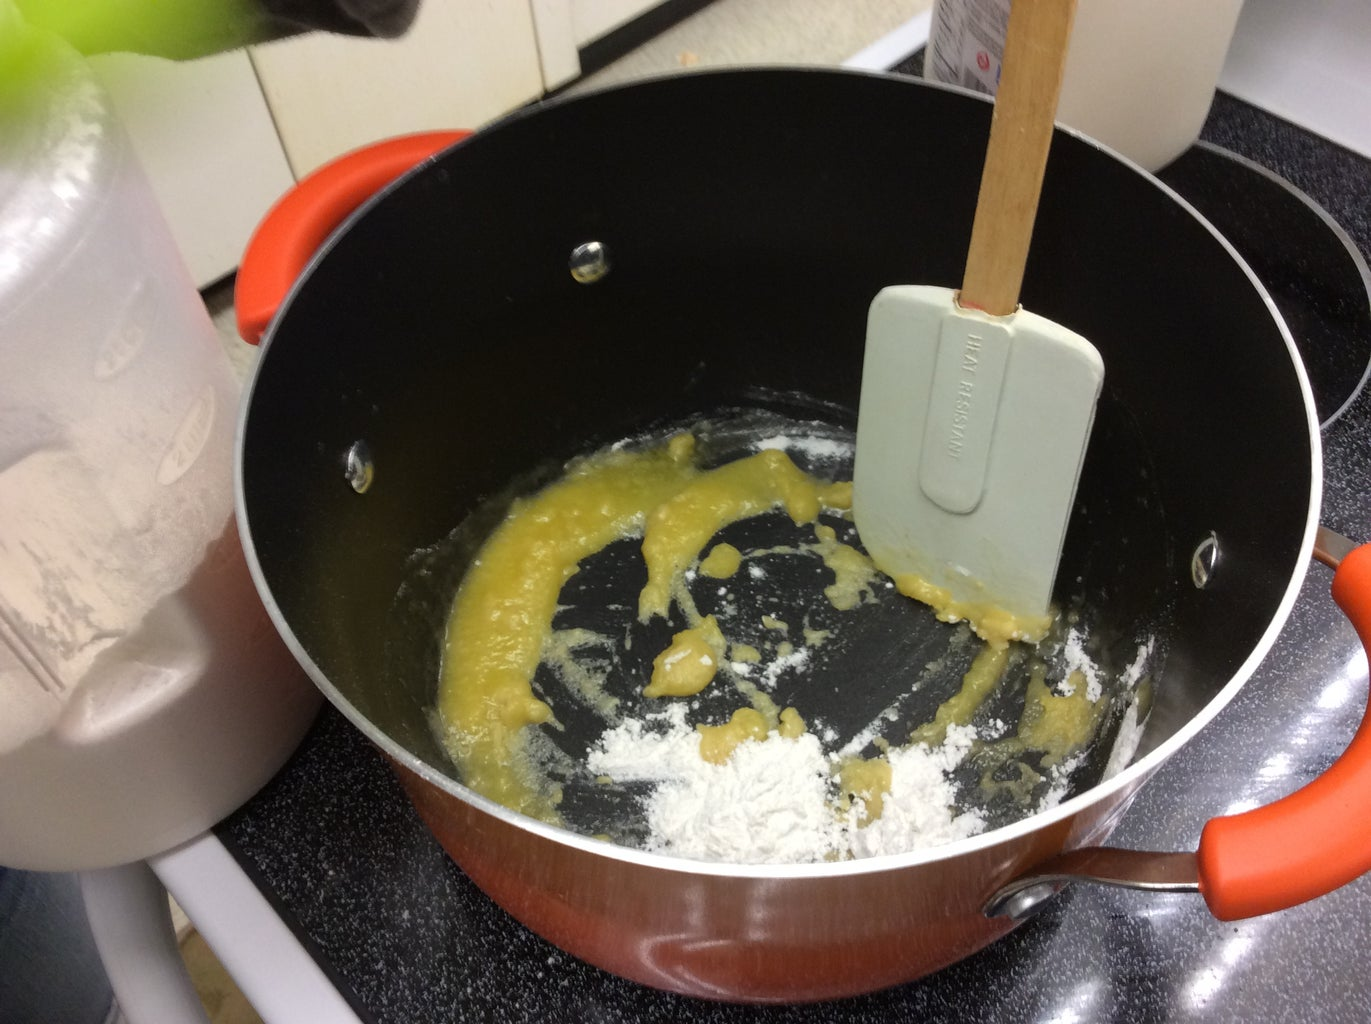 Add 4 Tbsp. of Flour and Stir Until Combined